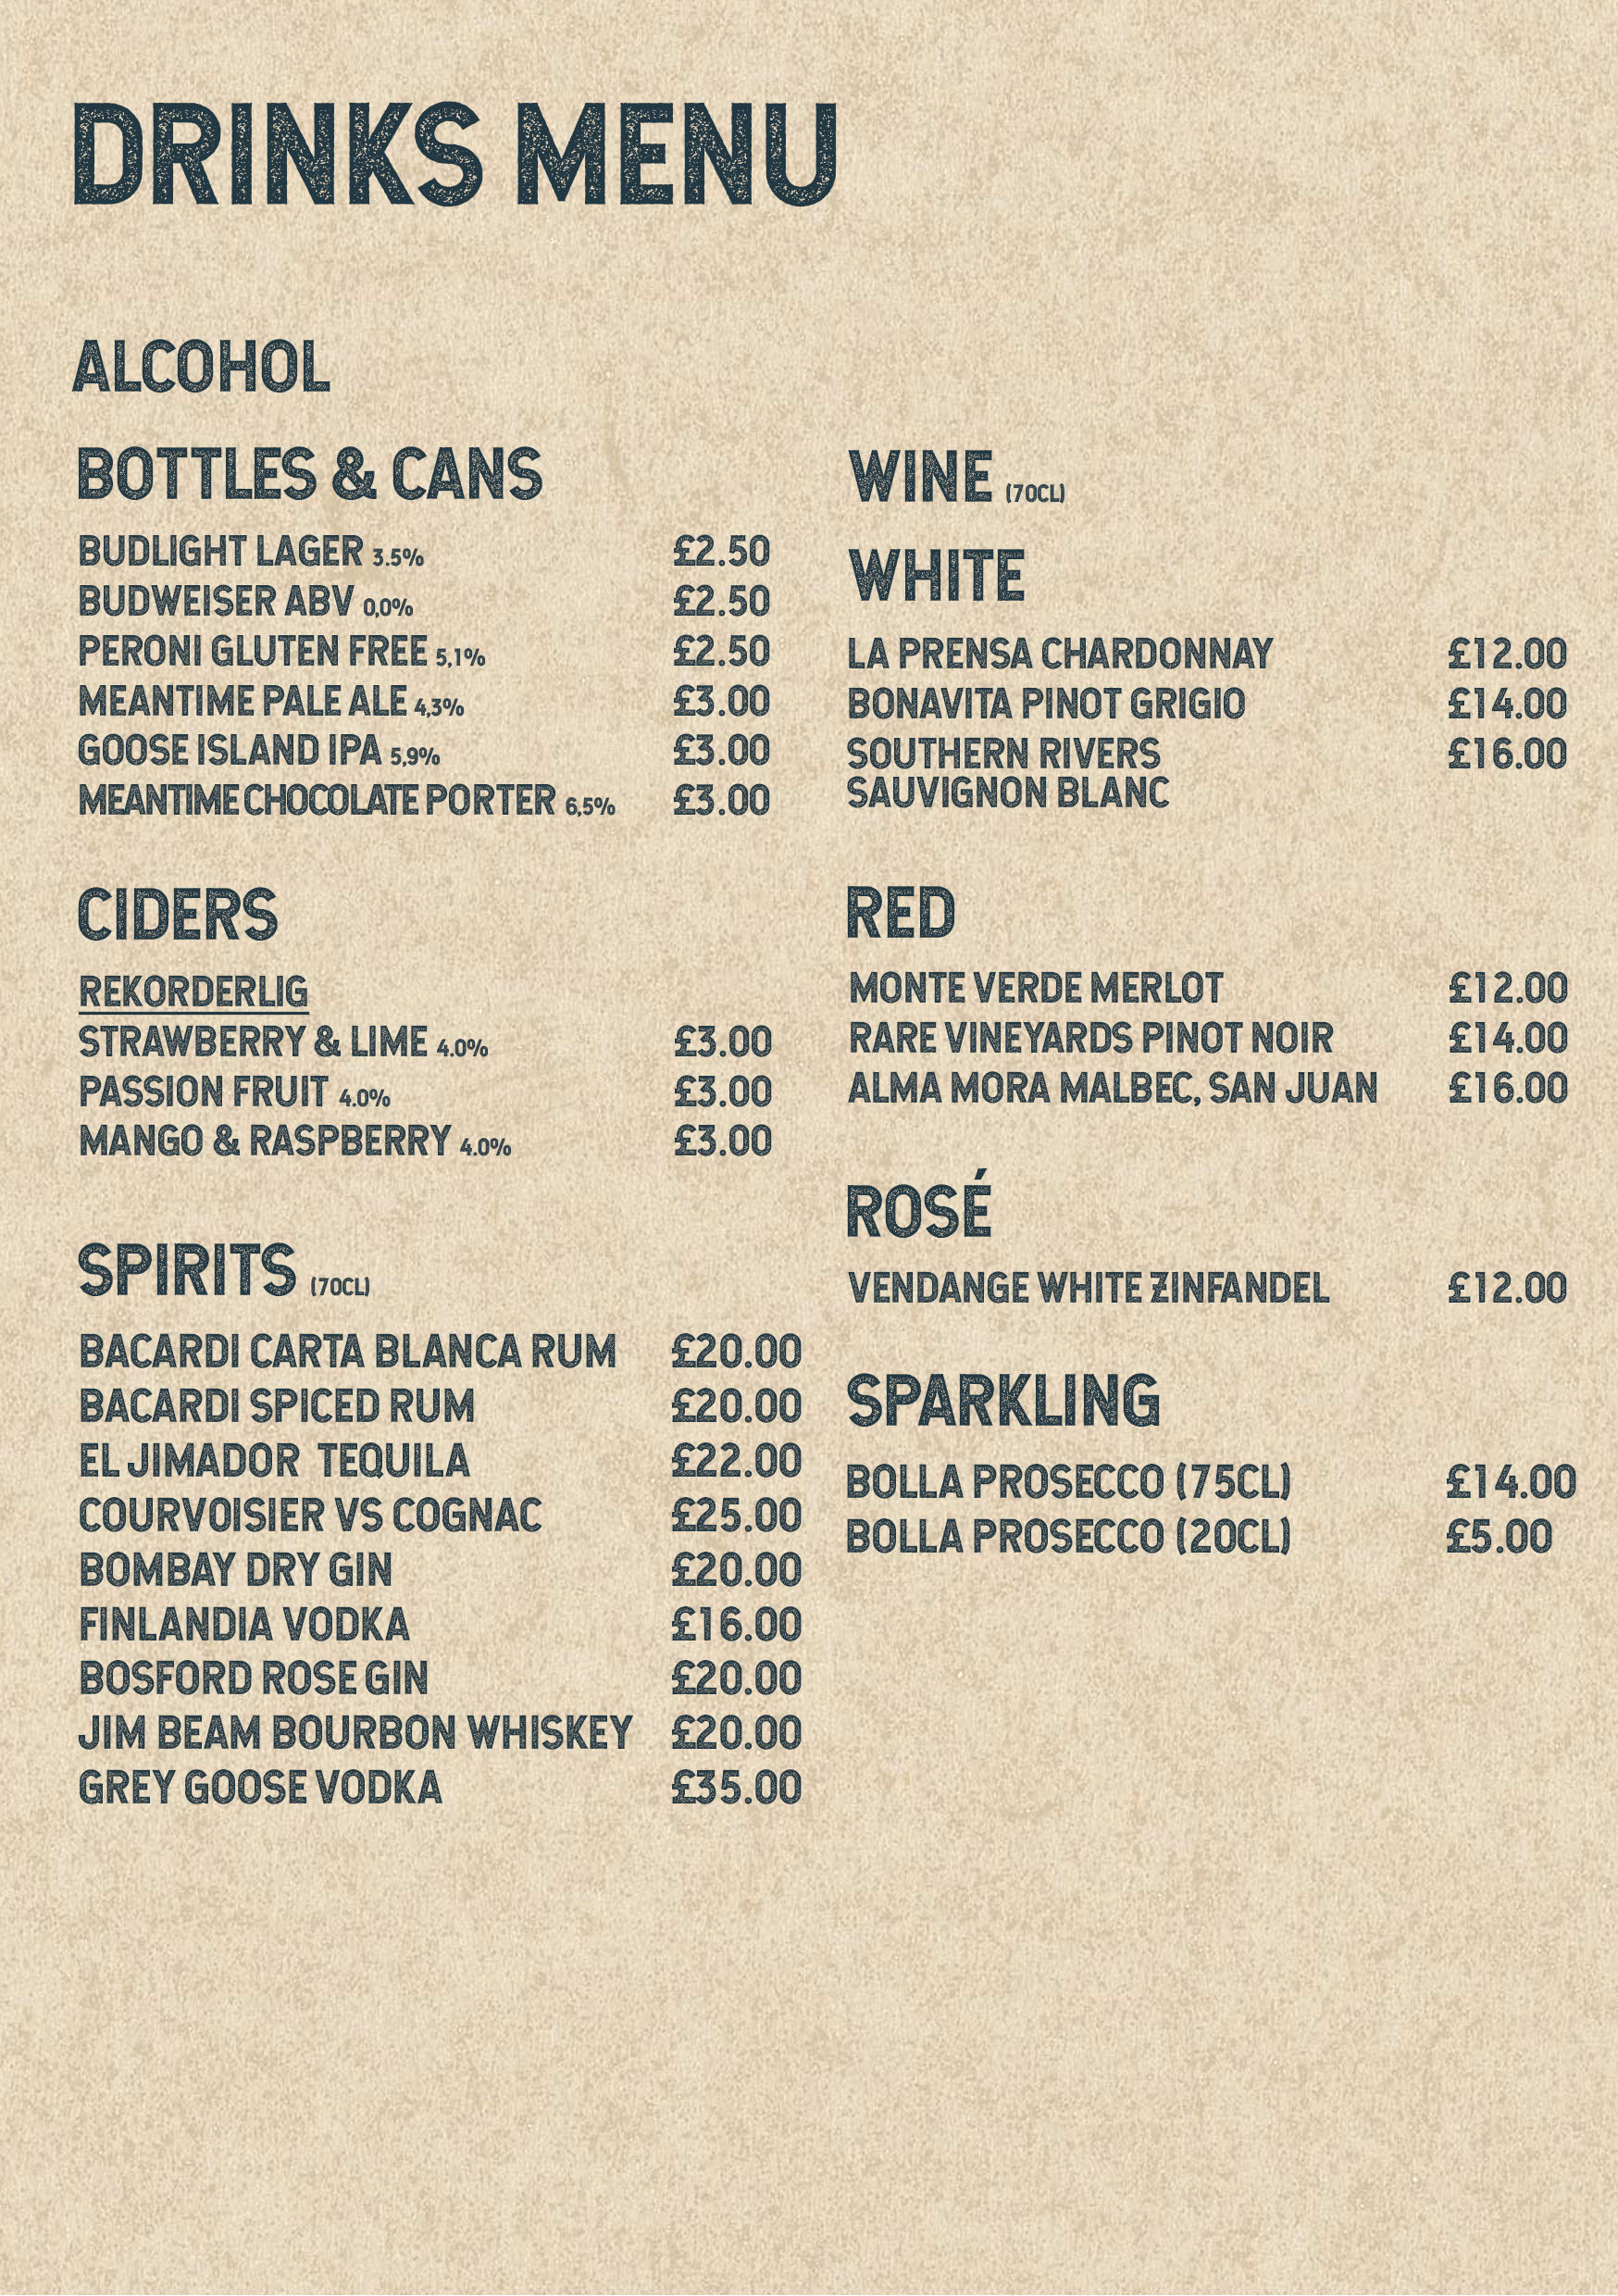 BrewStone's takeaway drinks menu